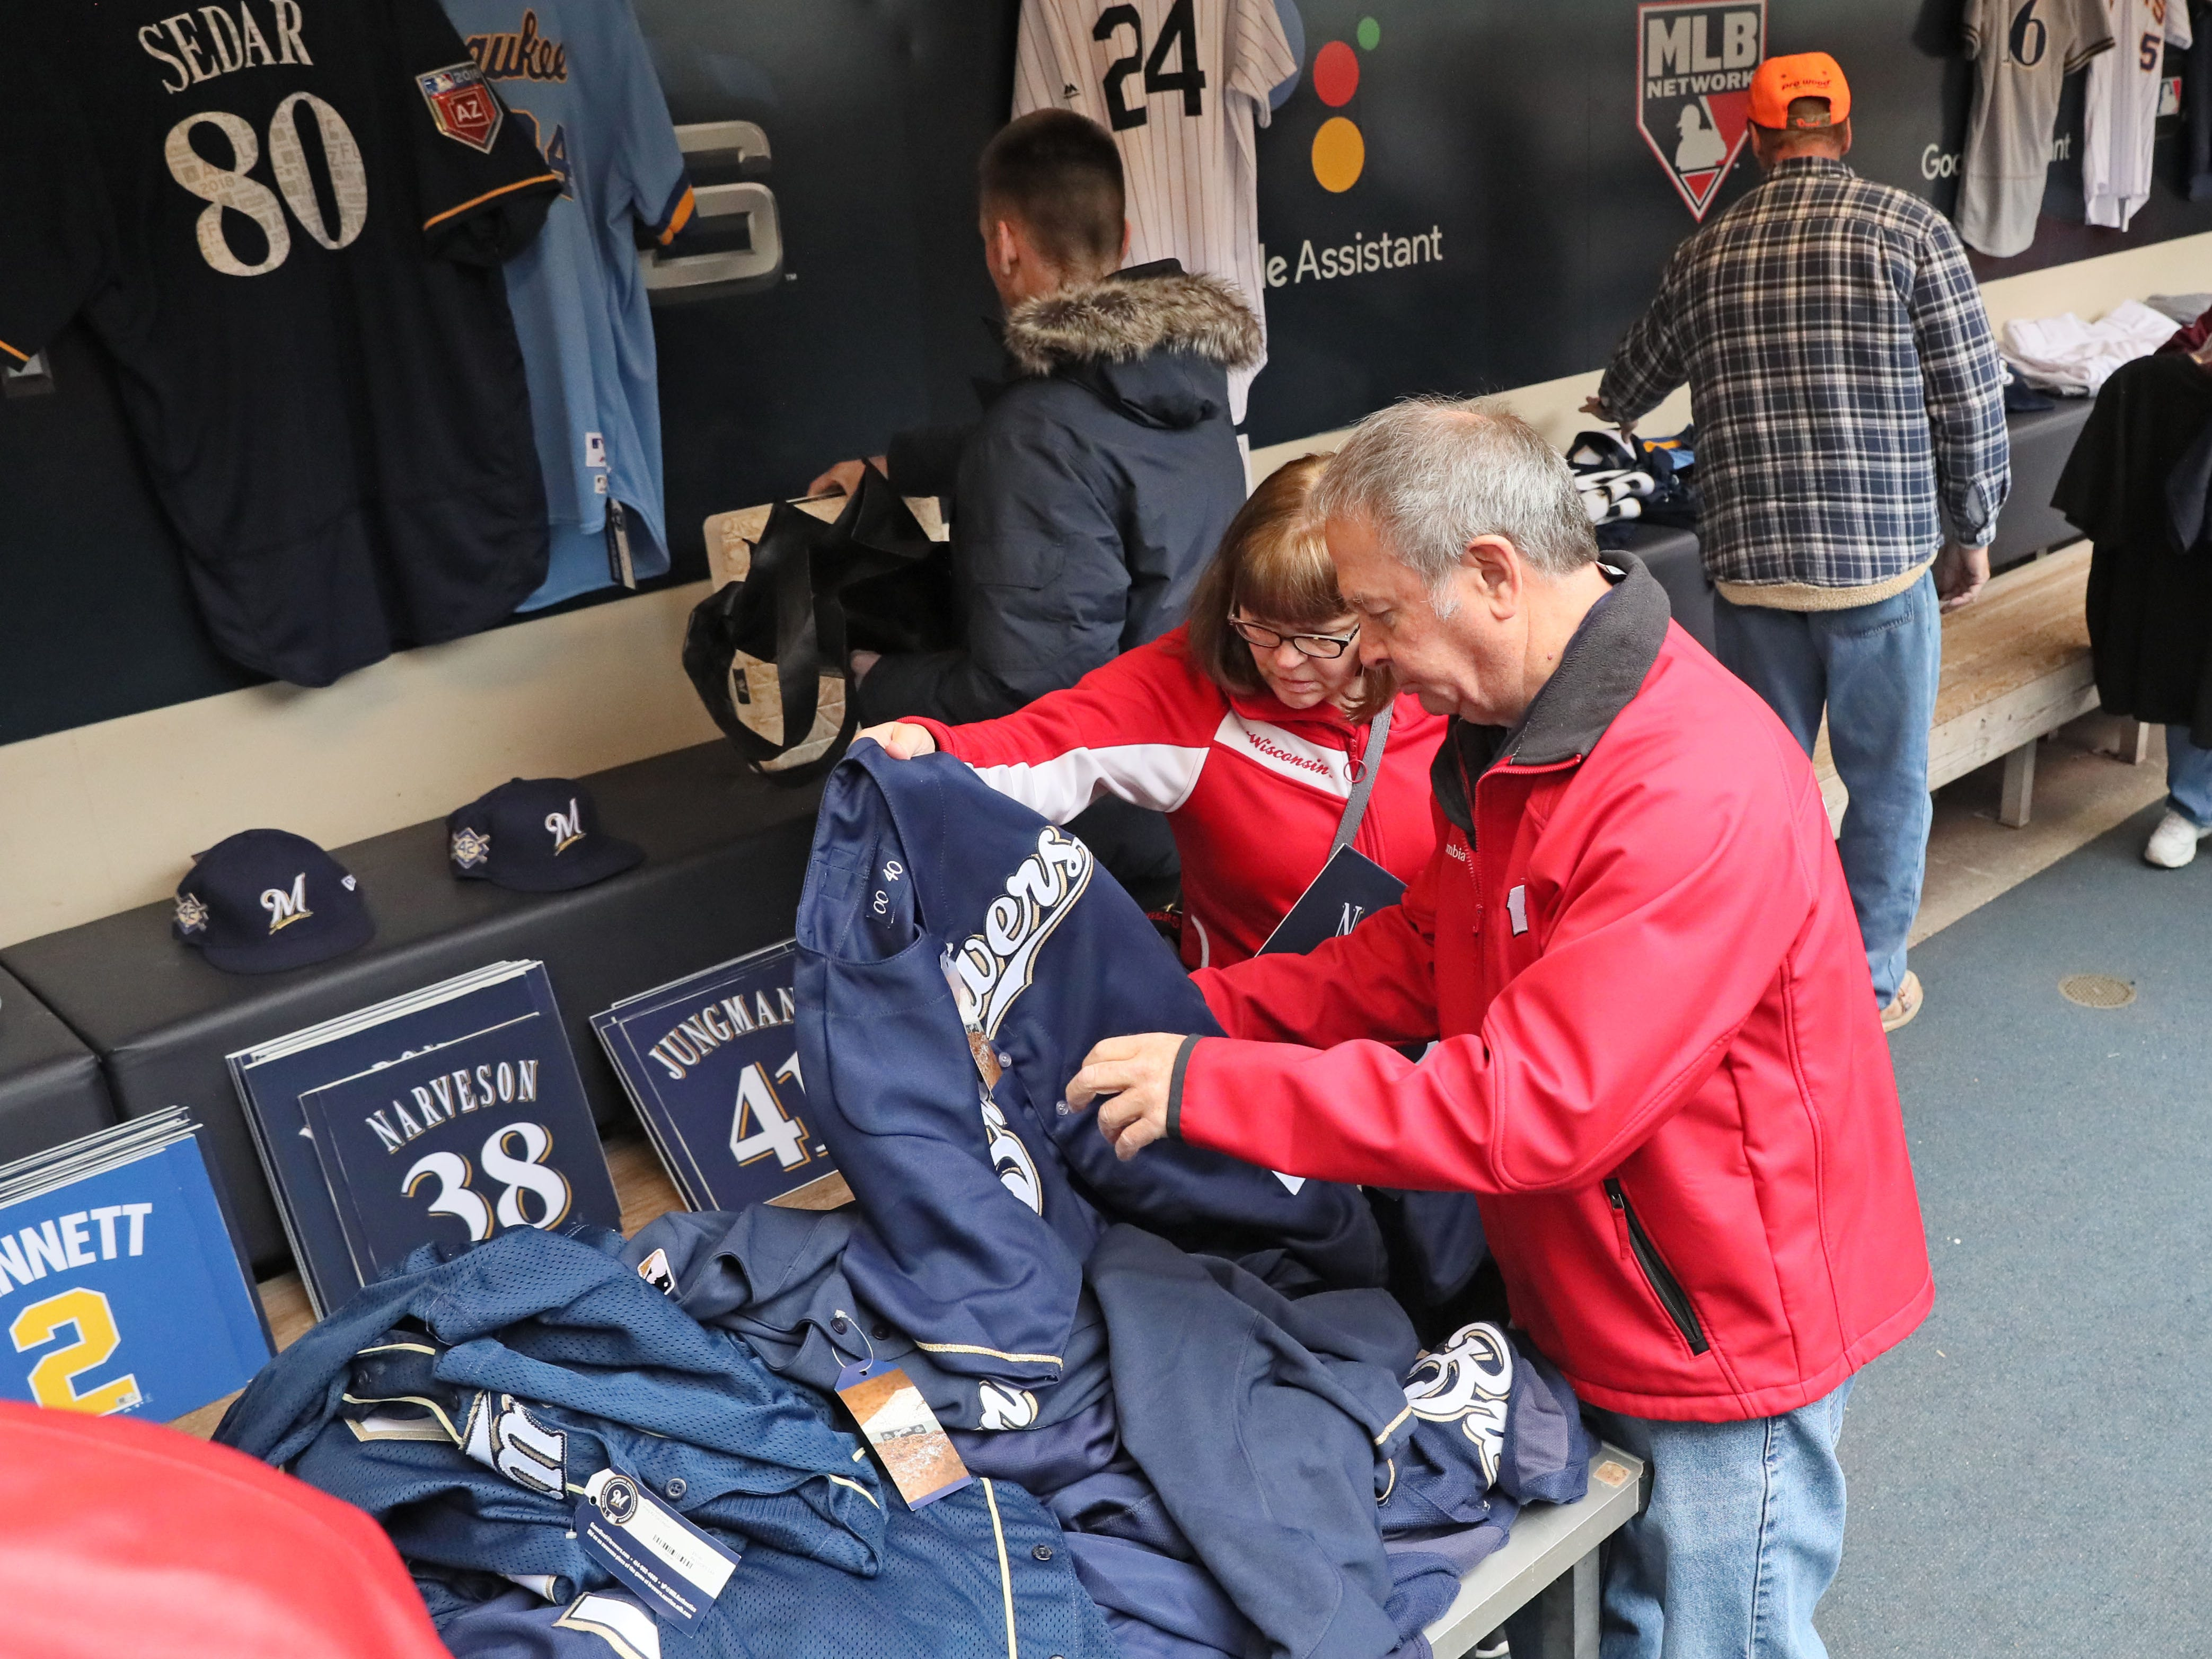 Linda Govier and her husband, Randy,  of Franklin peruse unmarked game jerseys for sale.  The players wore them but it's not known which ones. Most  likely were worn in spring training.